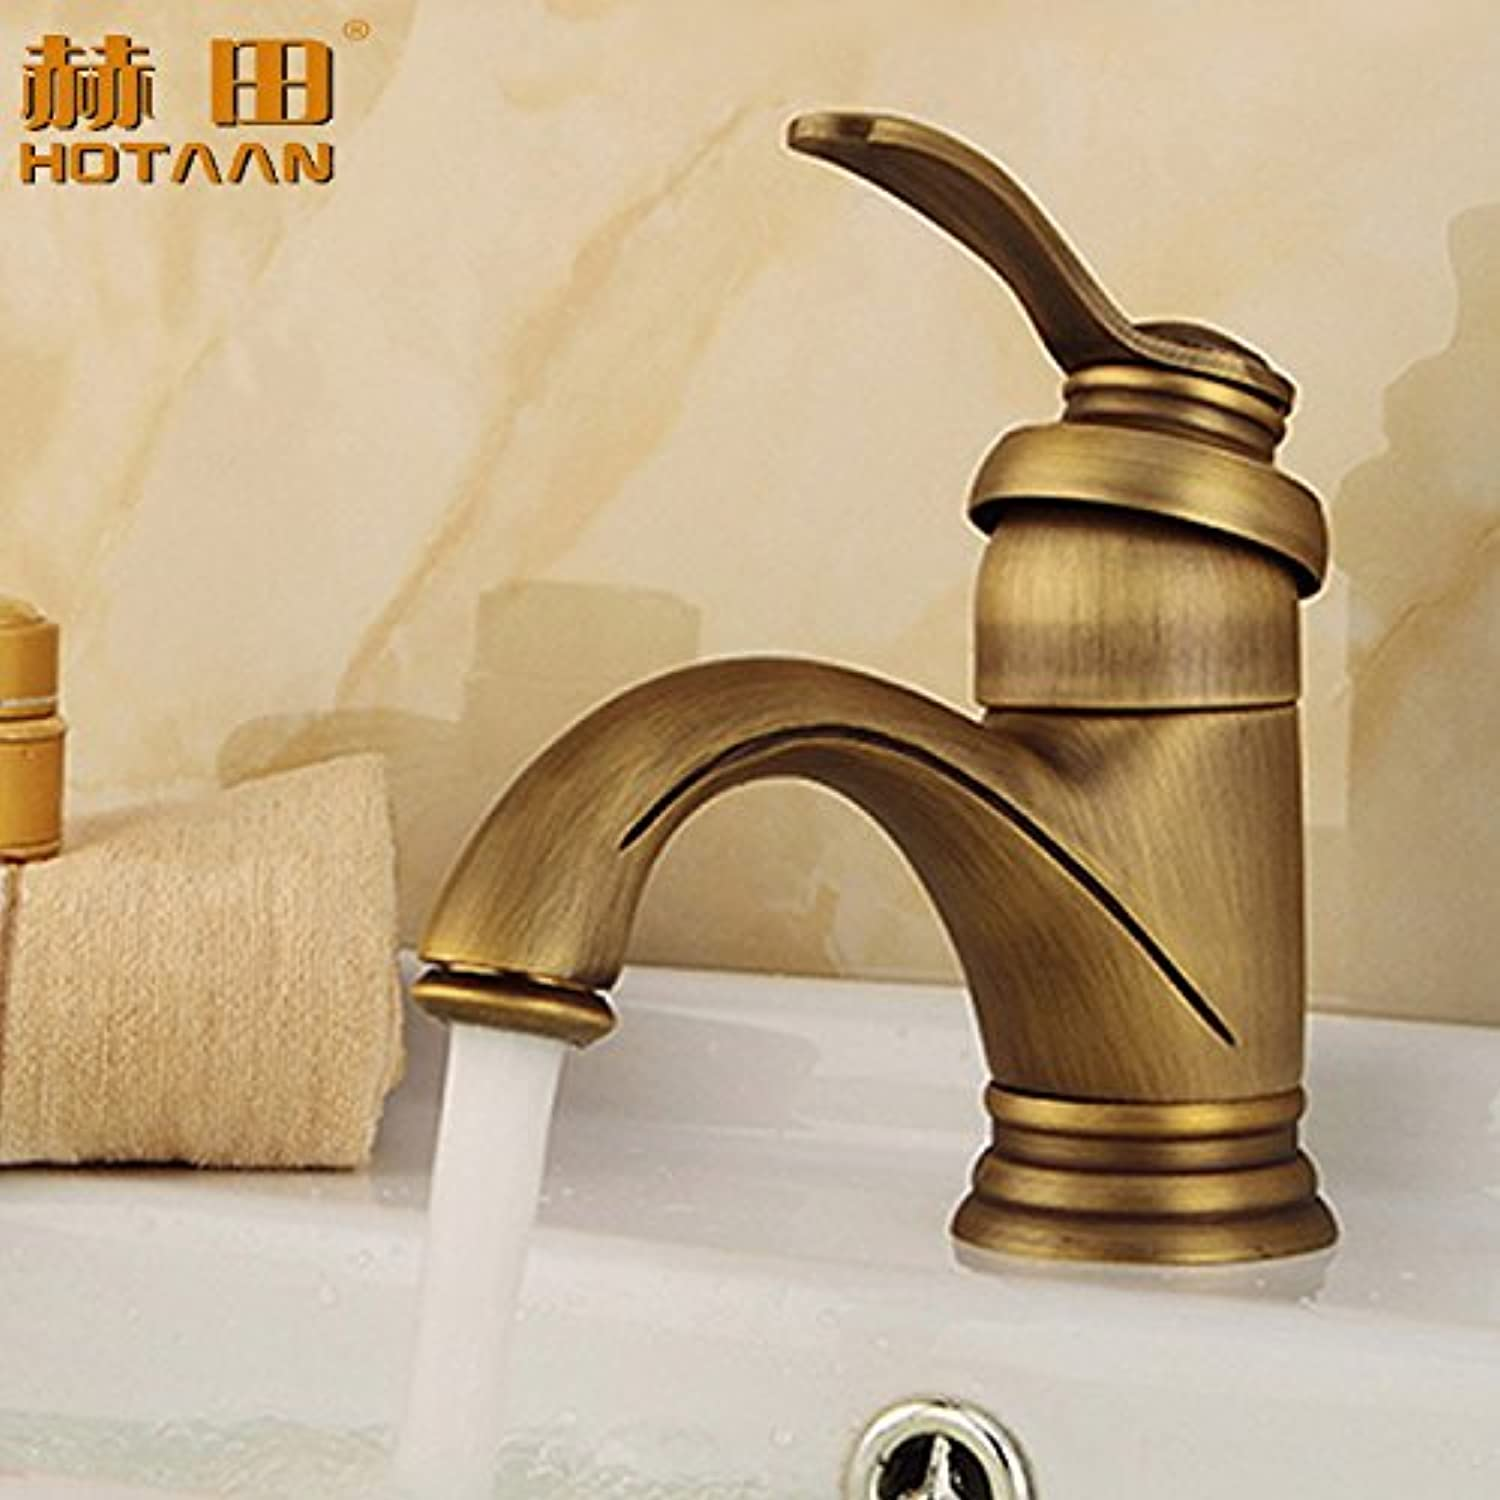 Hlluya Professional Sink Mixer Tap Kitchen Faucet The Antique brass faucet antique faucet bronze basin-wide single hole lowered basin mixer